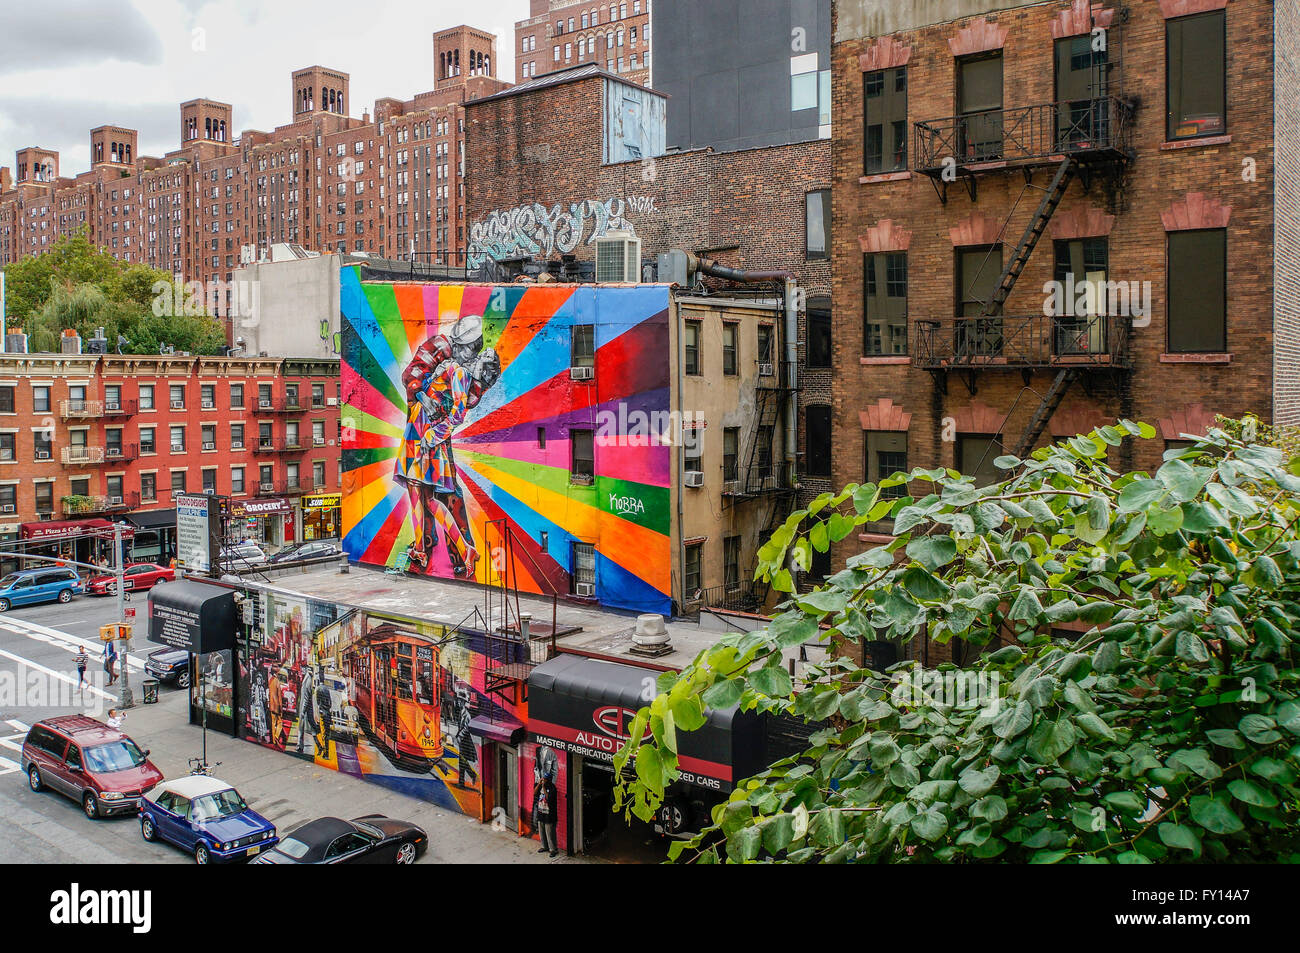 Graffiti art installation on buildings seen from the High Line, Meatpacking district, New York City Stock Photo